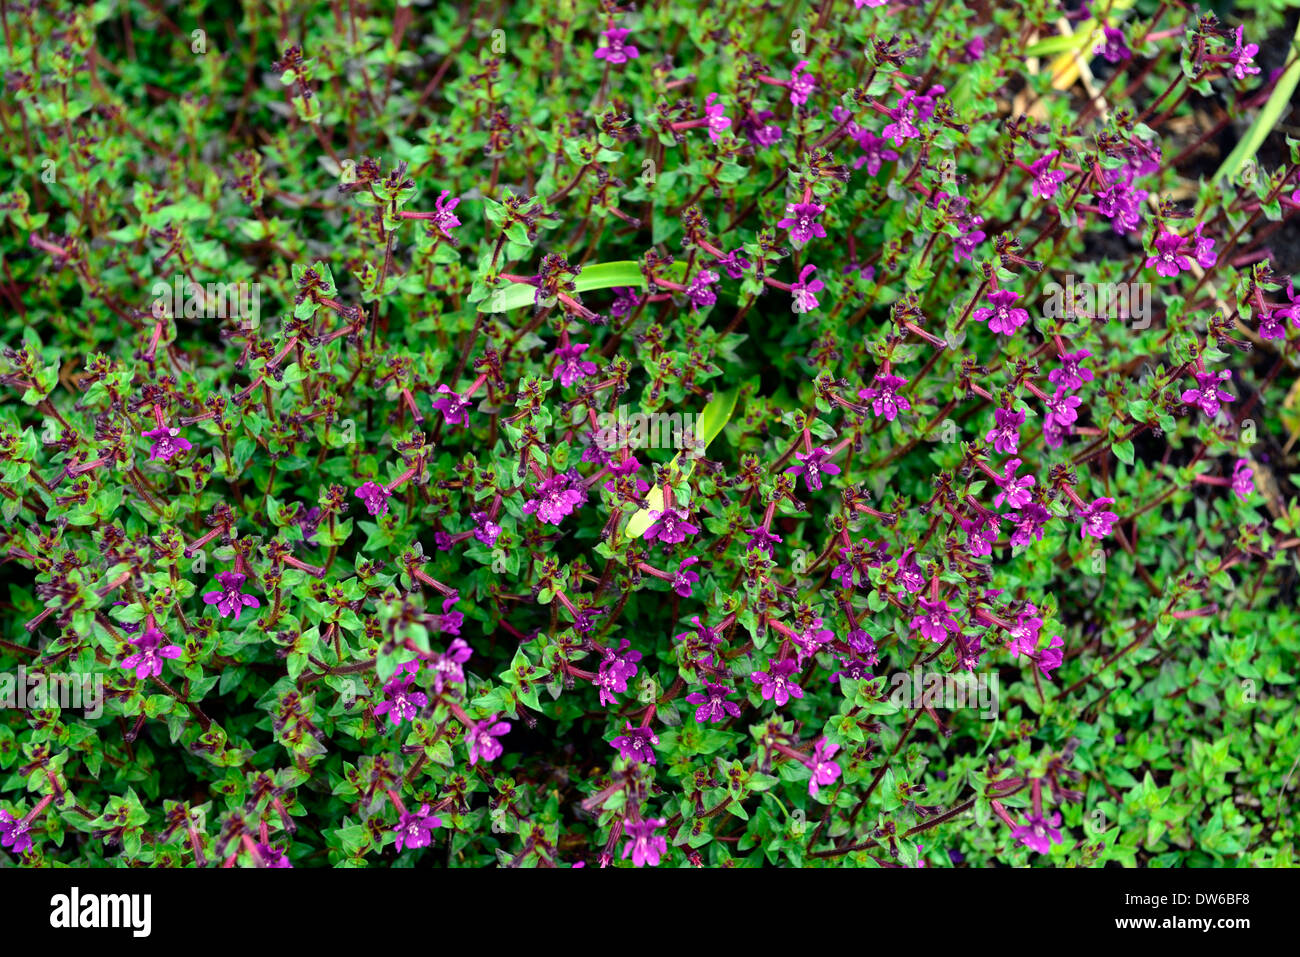 Cuphea aequipetala purple flowers flower flowering evergreen stock cuphea aequipetala purple flowers flower flowering evergreen perennial groundcover ground cover plant mightylinksfo